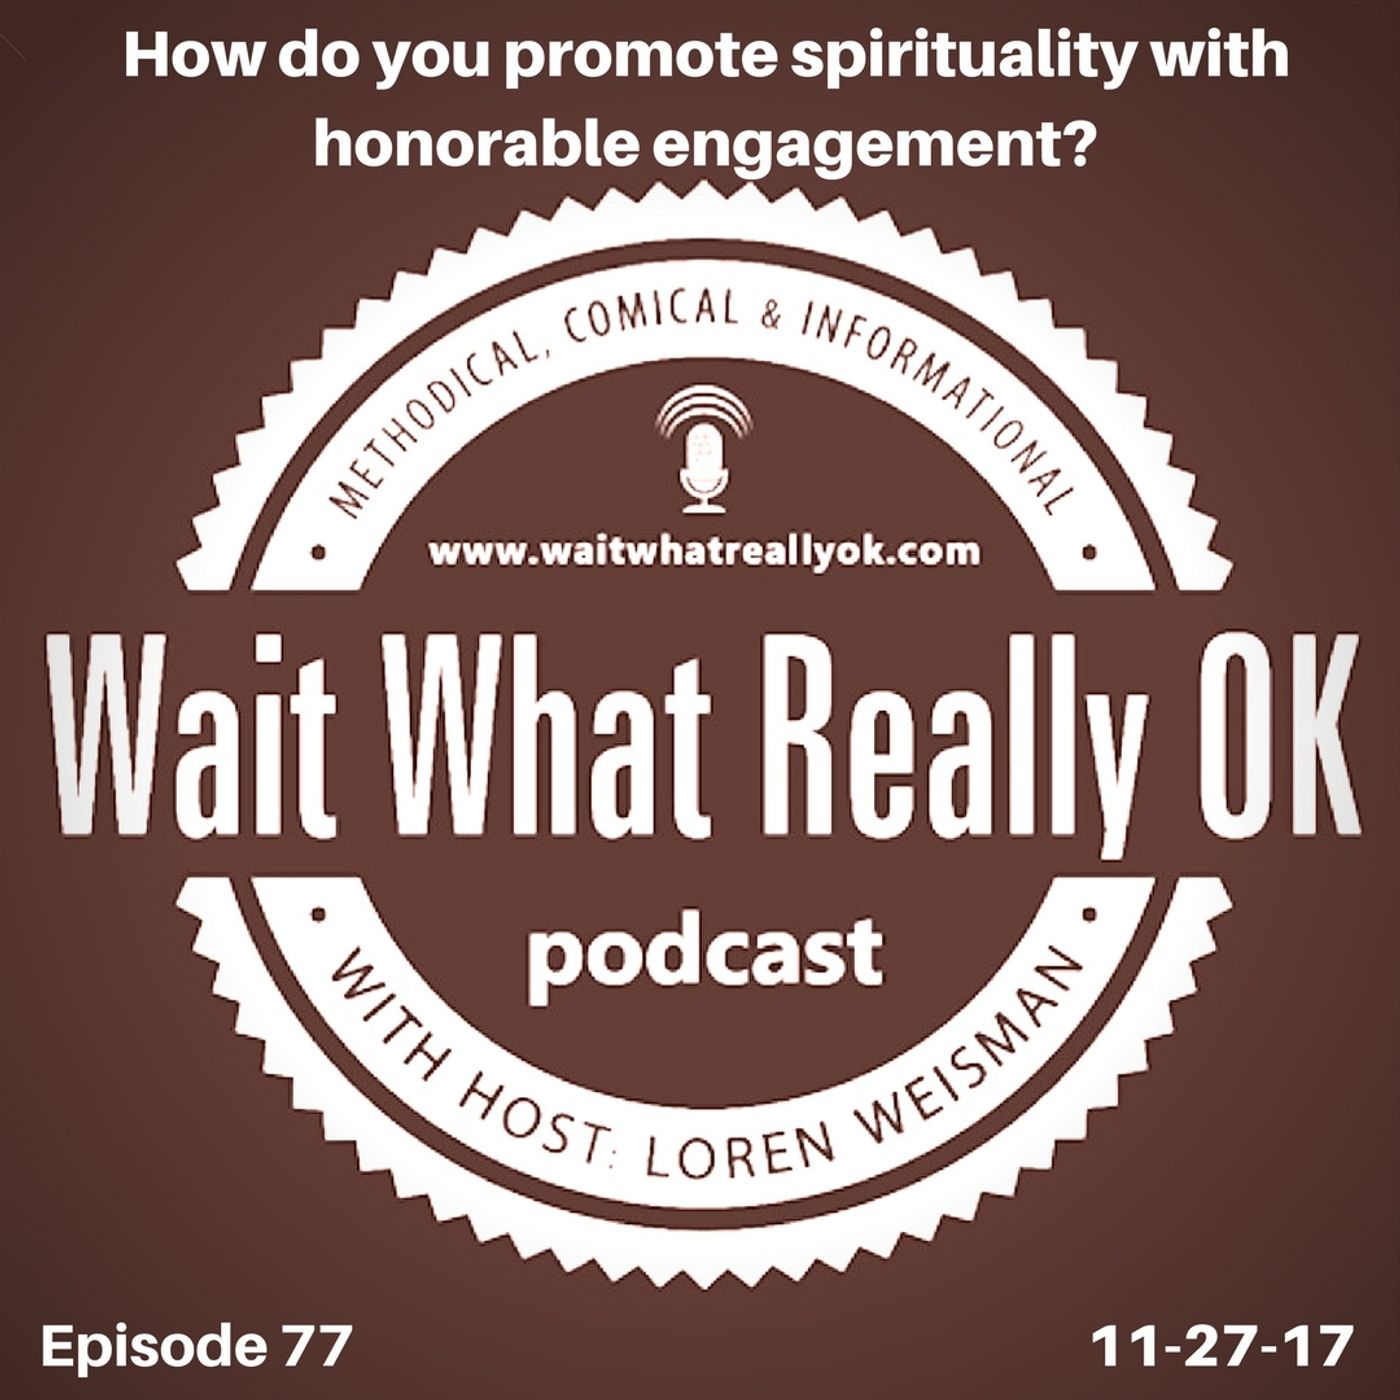 How do you promote spirituality with honorable engagement?